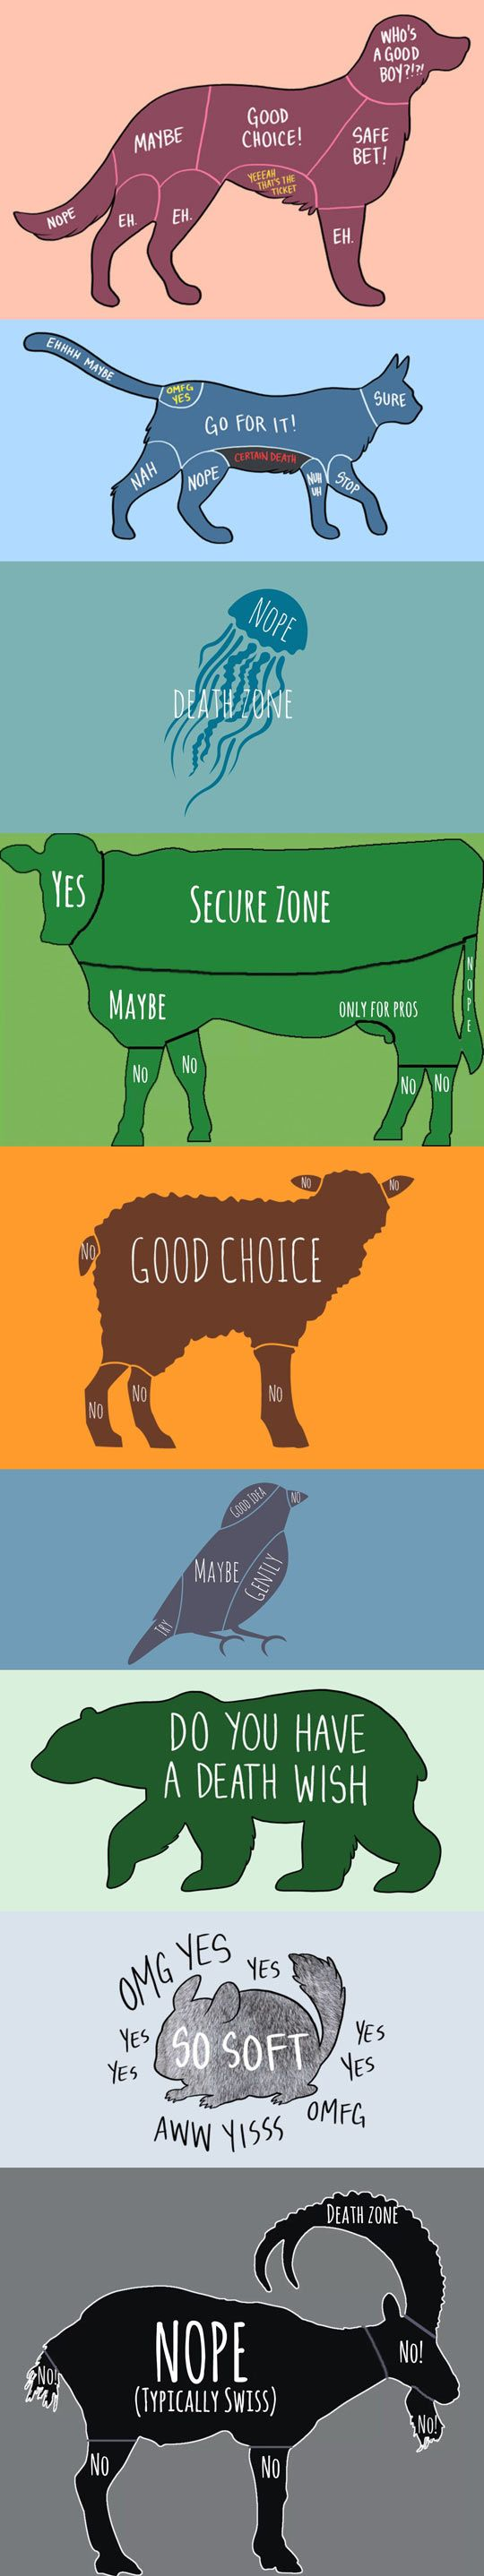 The Right Way To Pet Animals